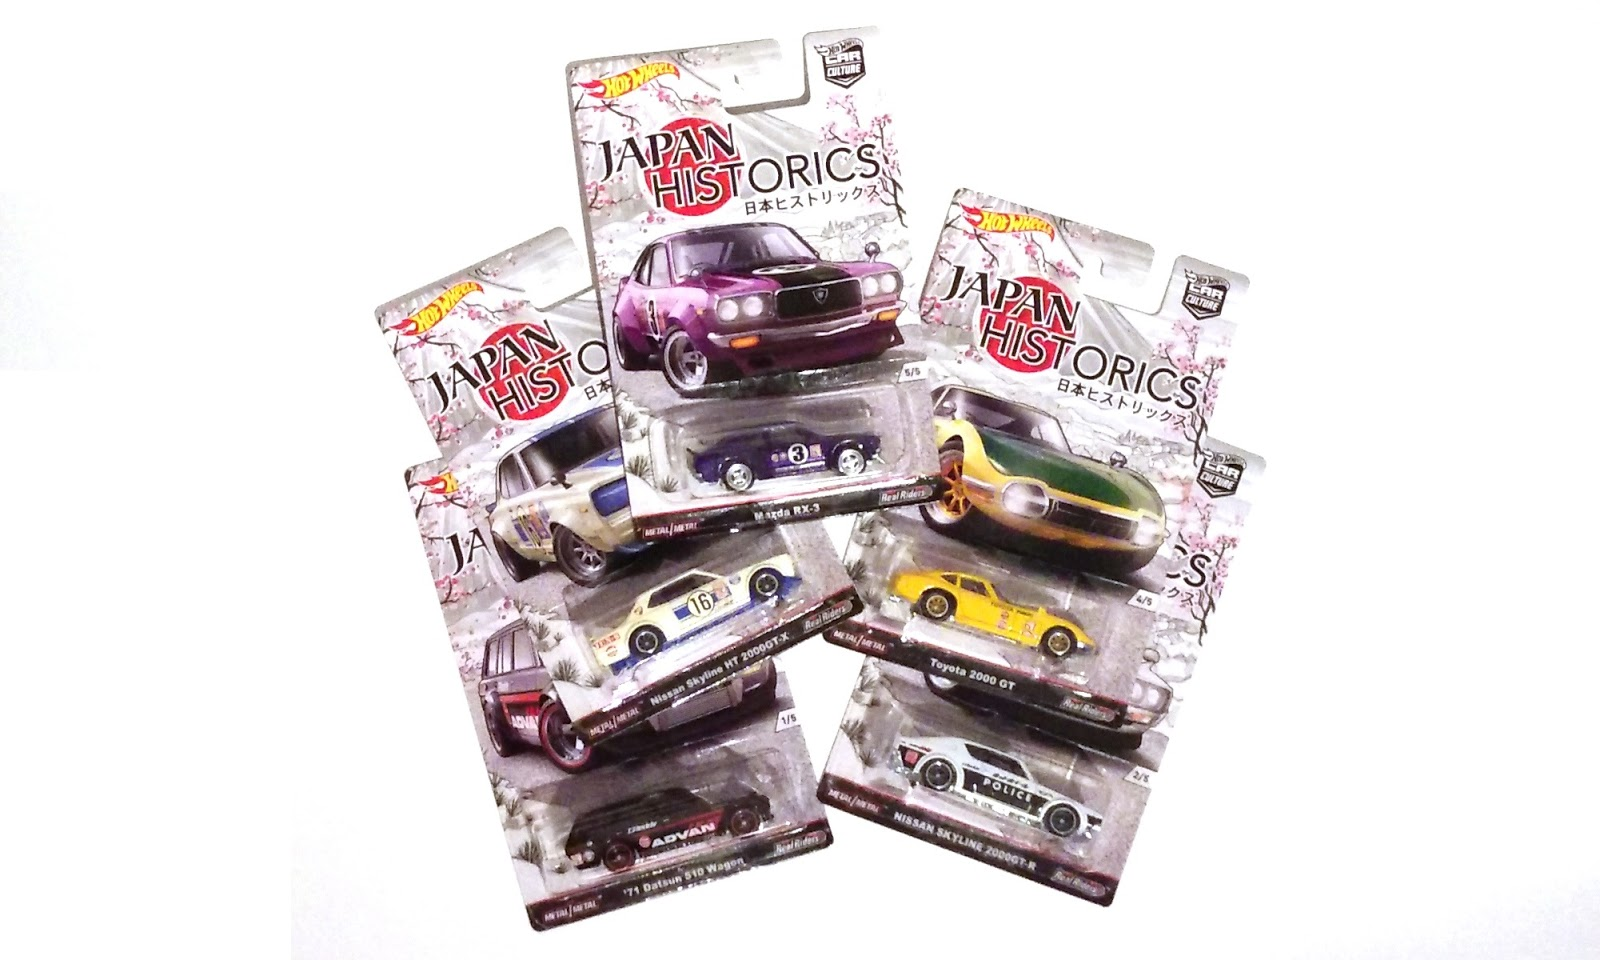 Androoos Diecast Great Hype Expectations Opening A Set Of Decal Hot Wheels Datsun Wagon Japan Histori Doing So Allowed Me To Secure Two Sets The Historics One Rip Open Which You Will Be Seeing Here And Another Stash Away For Trades